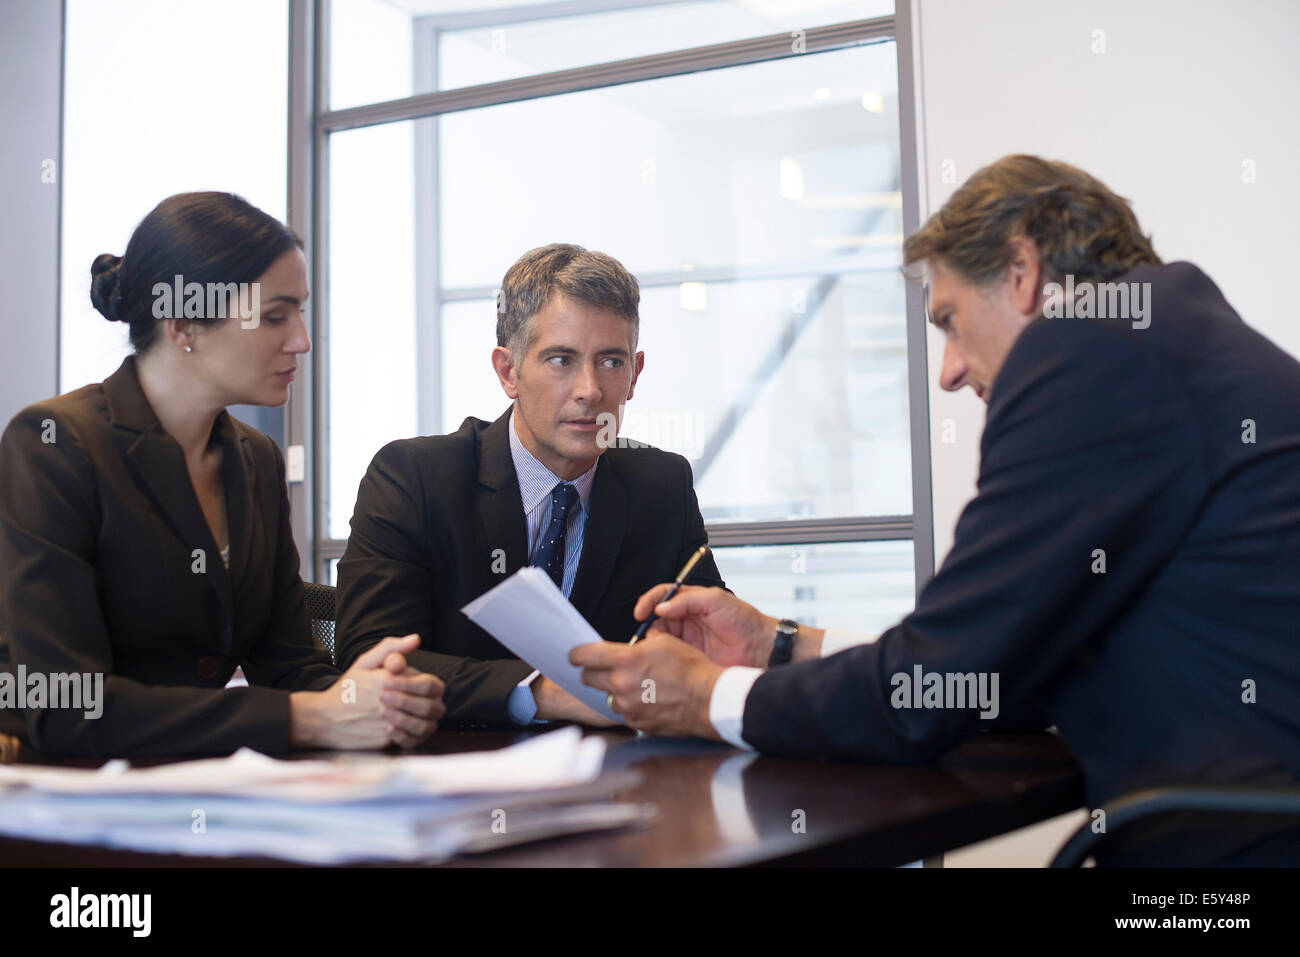 Business meeting, business associates reviewing document - Stock Image